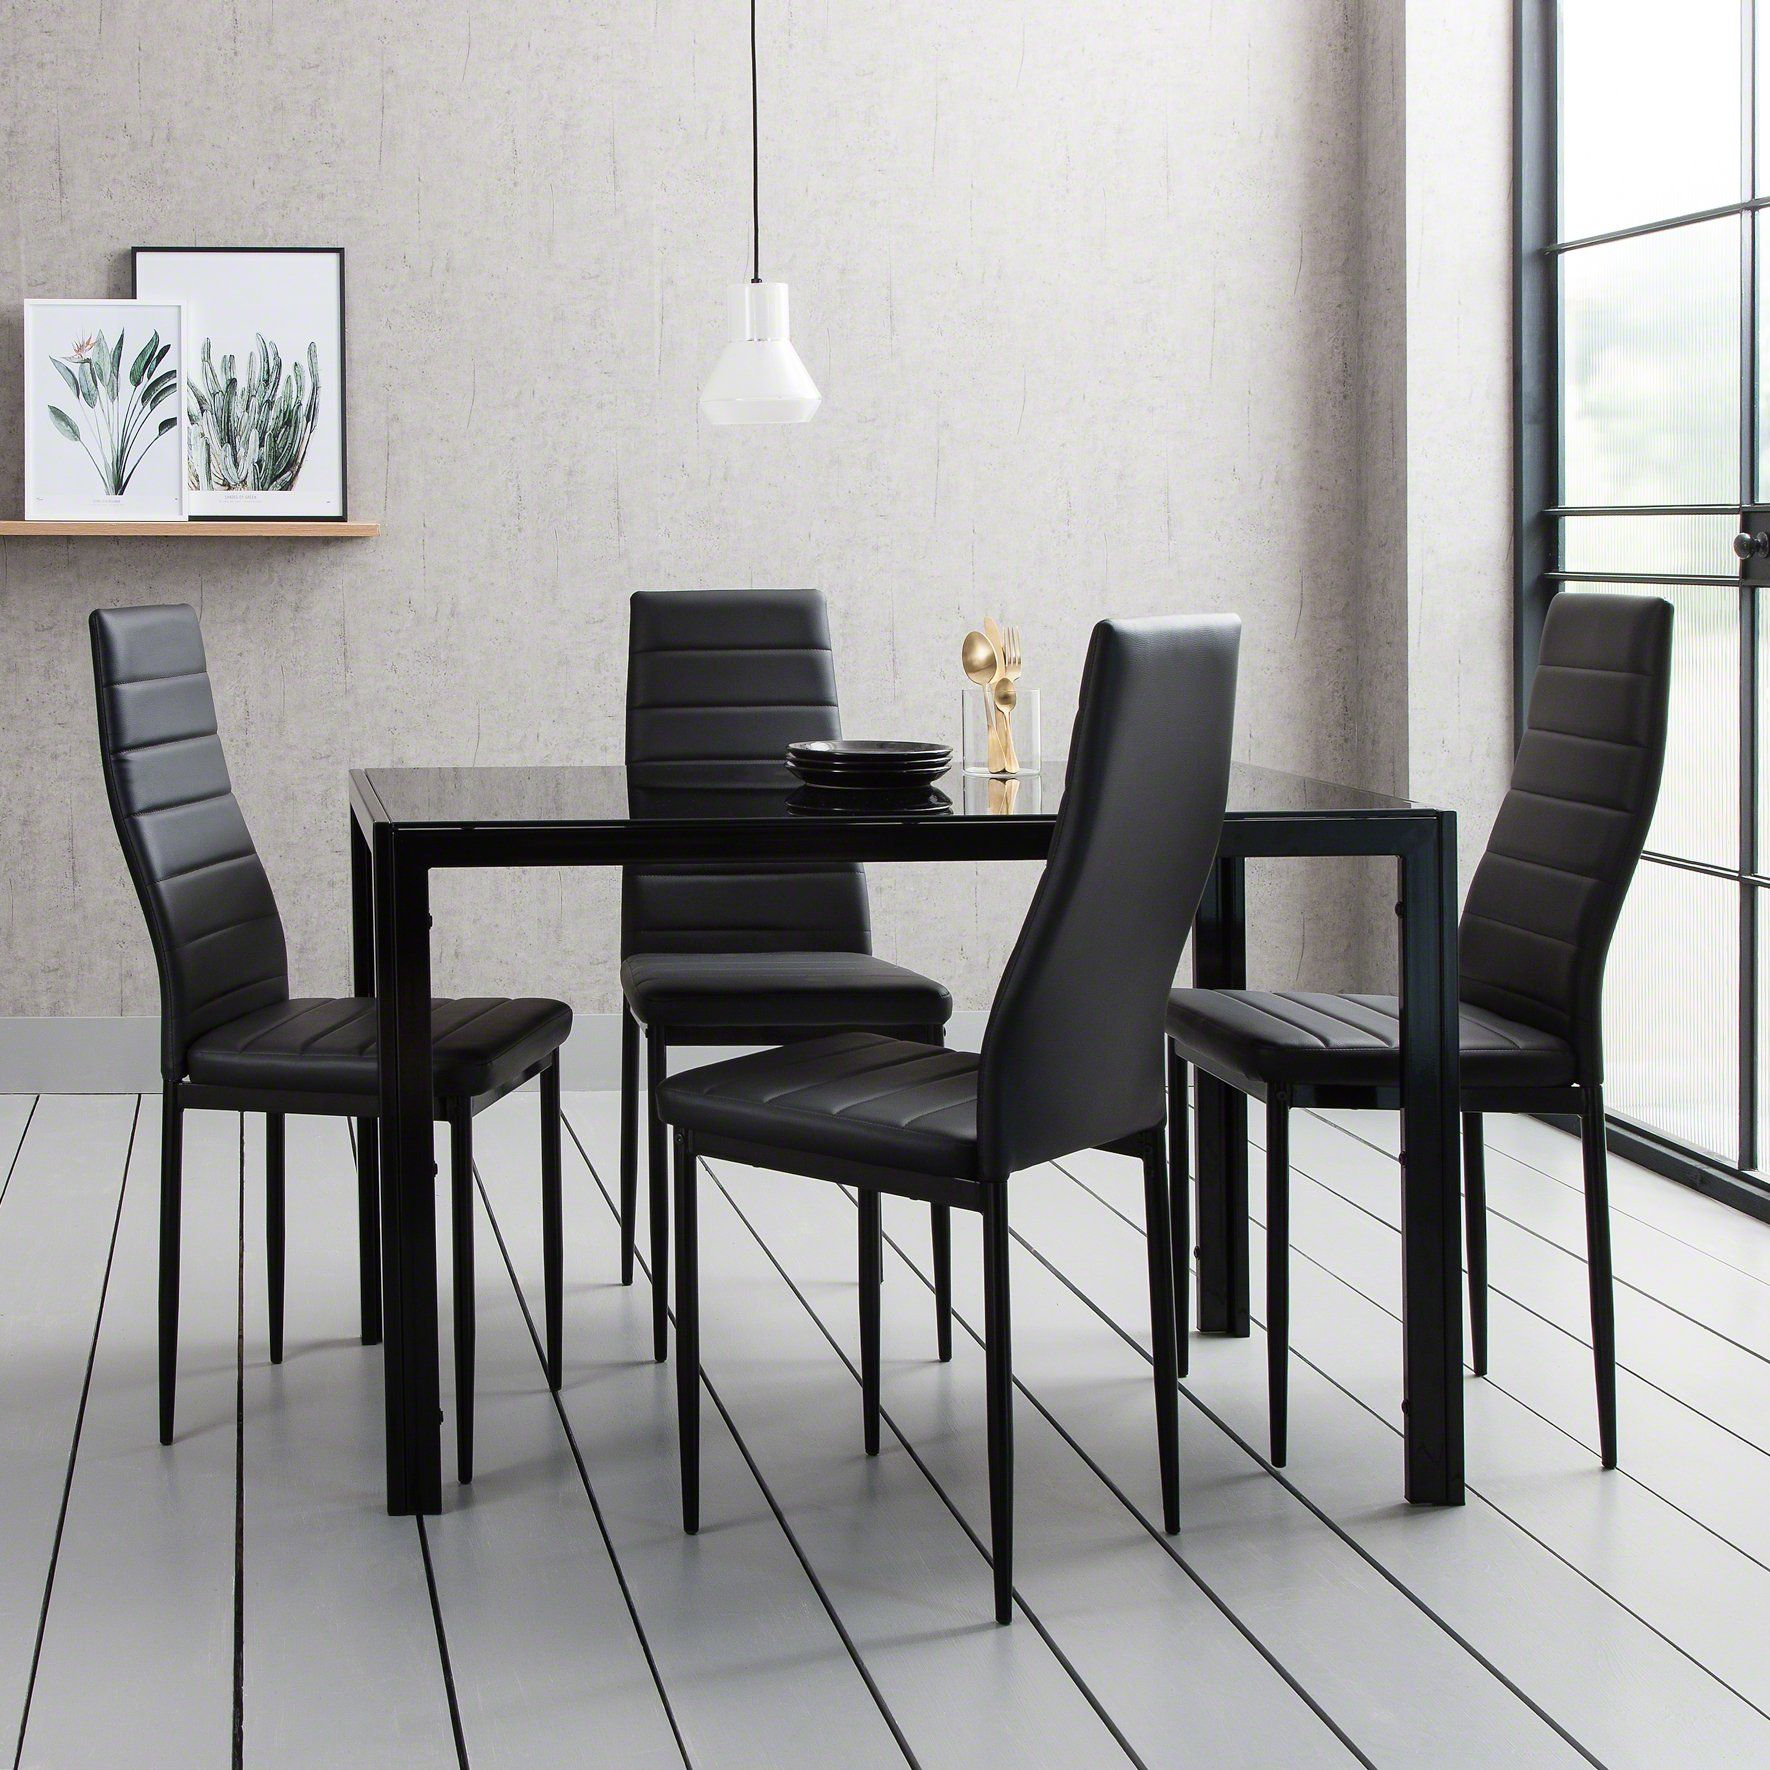 Picture of: Glass Dining Table Set With 4 Black Chairs Set Delivery On Or Before Laura James